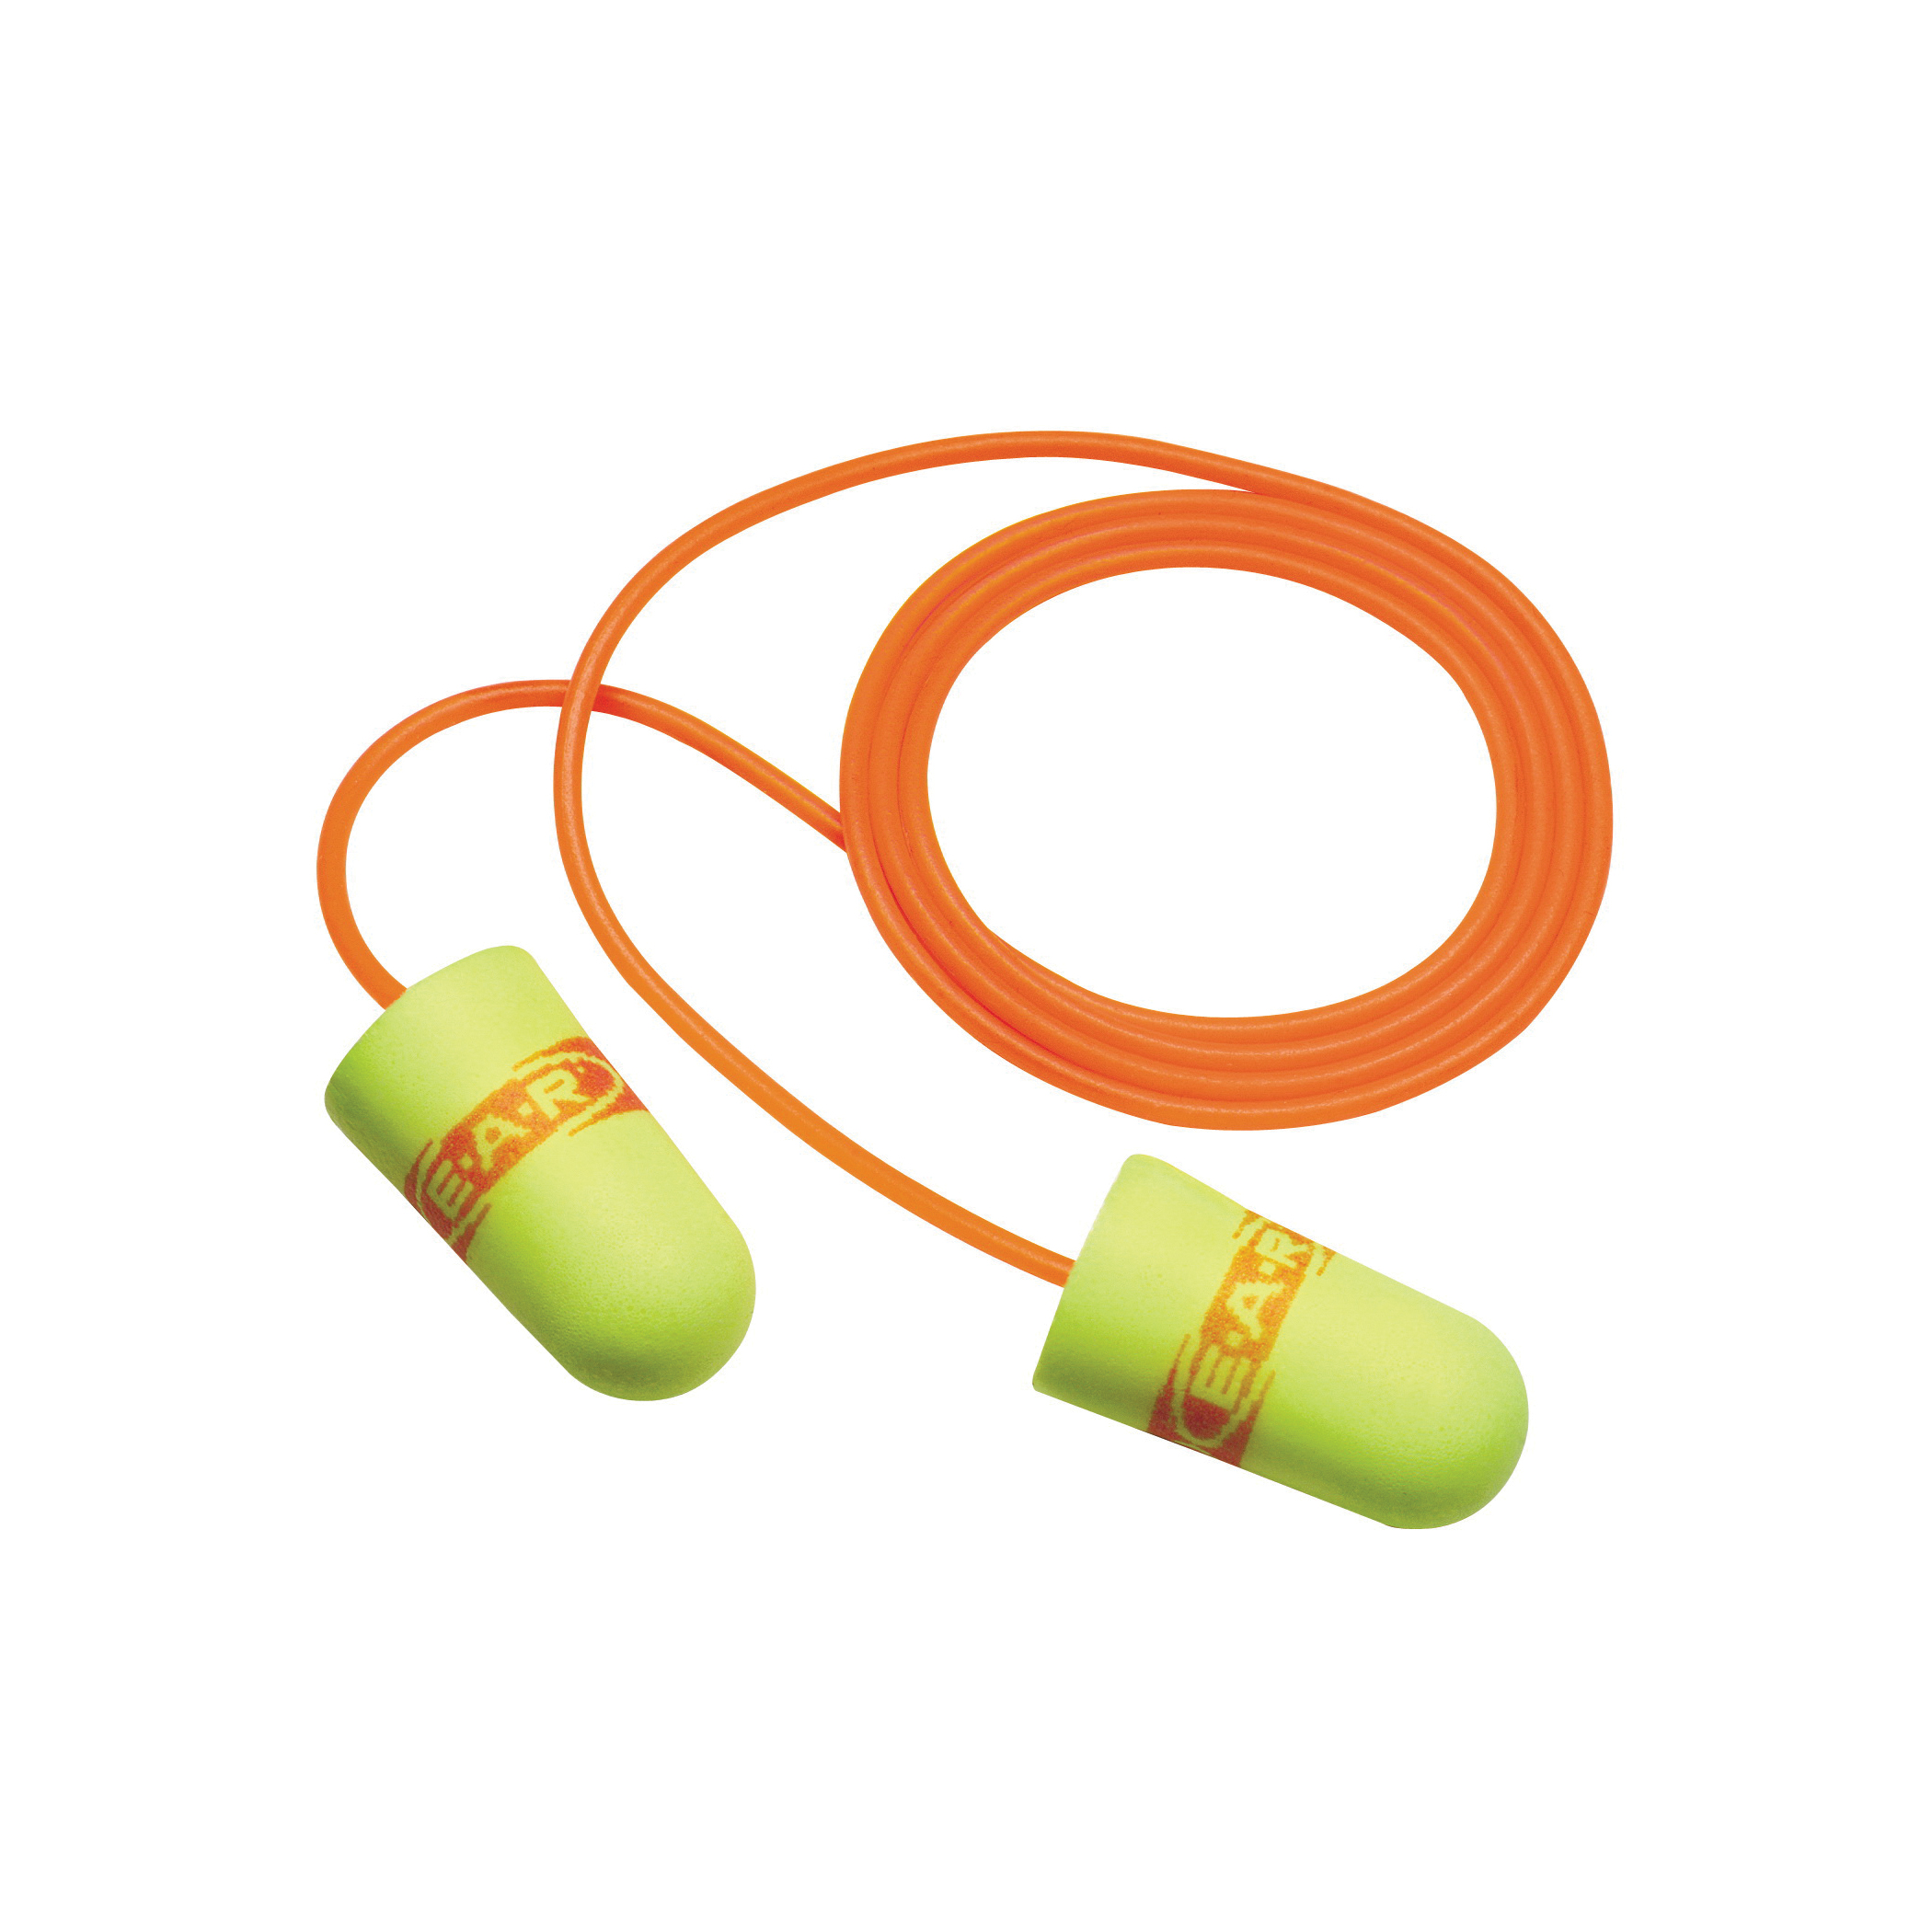 3M™ E-A-R™ 3M™ E-A-Rsoft™ 080529-11059 SuperFit™ Earplugs, 33 dB Noise Reduction, Tapered Shape, CSA Class AL, Disposable, Corded Design